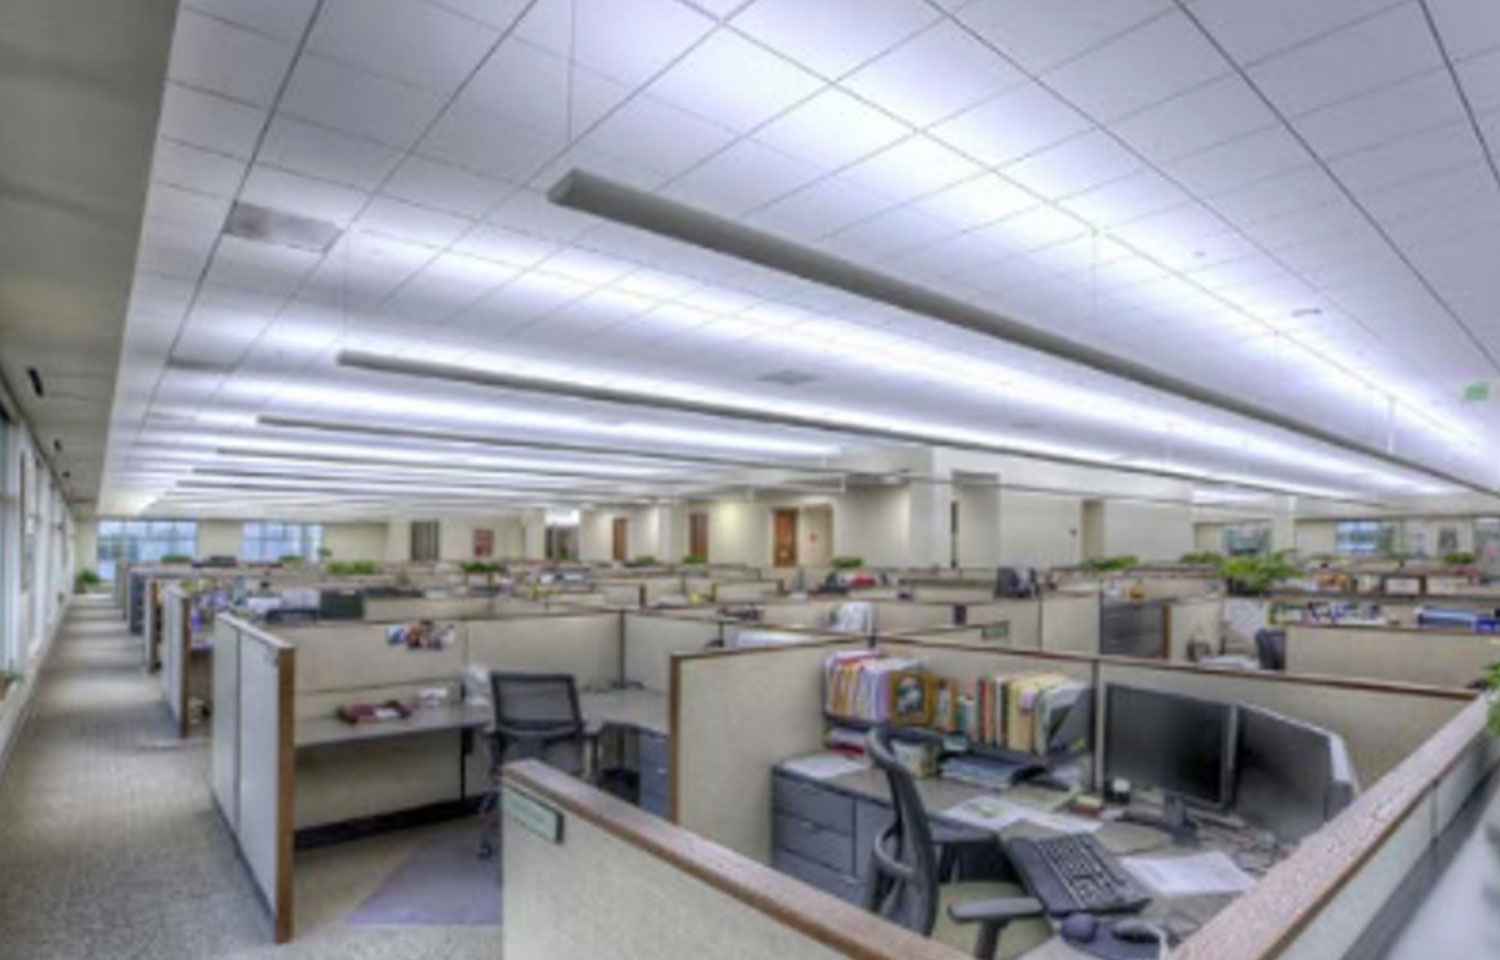 LED Fluorescent Tube Replacement